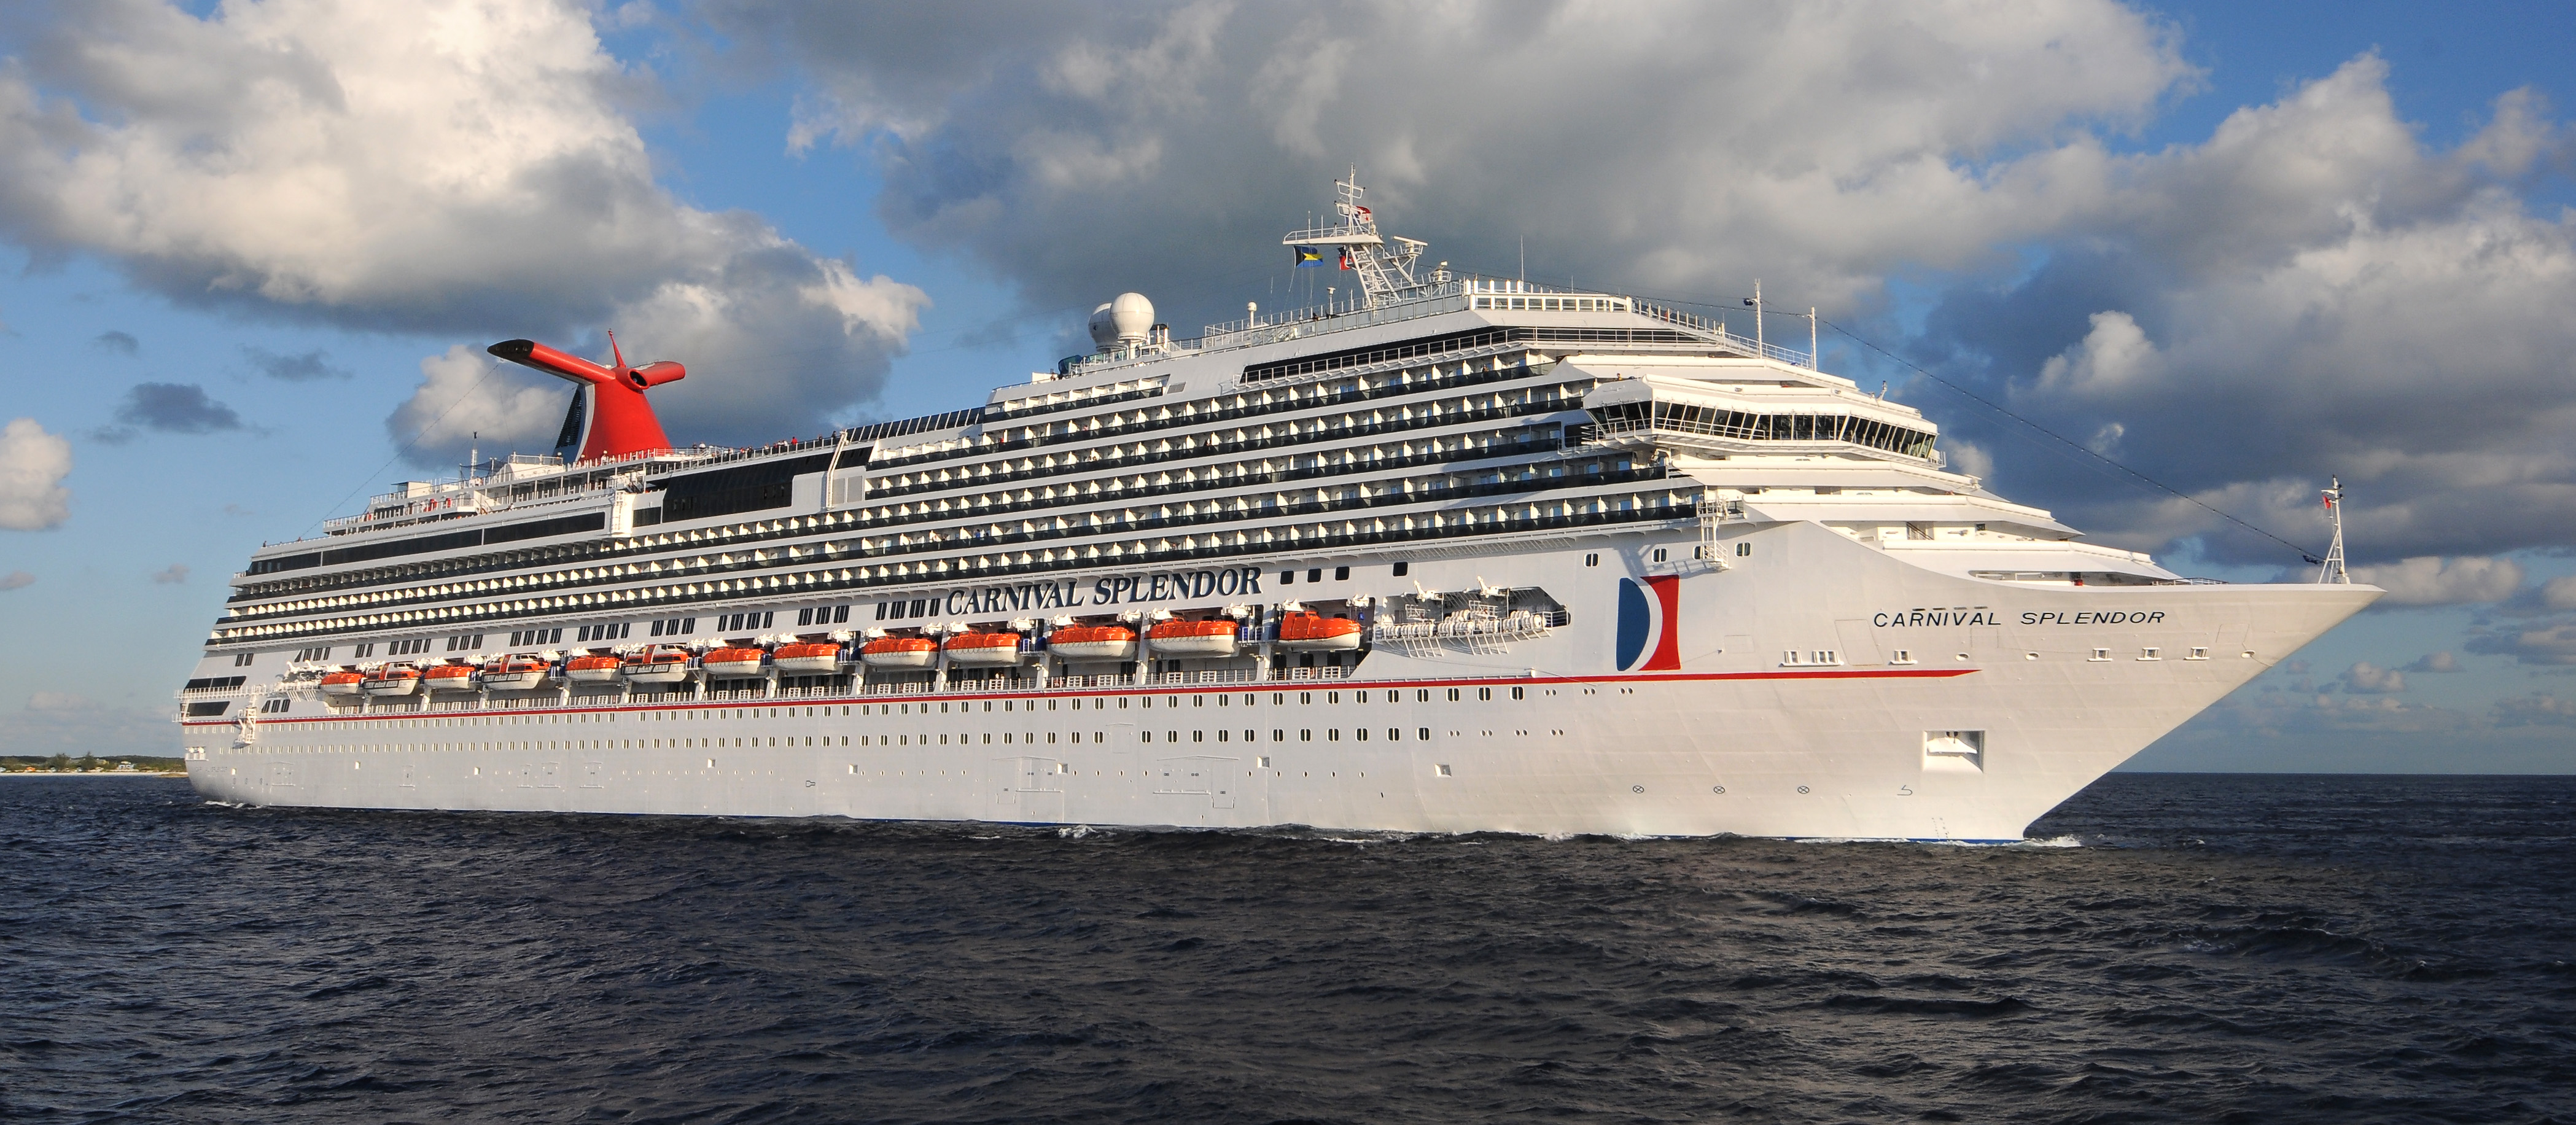 Carnival Splendor Is Making Its Way To The Big Apple